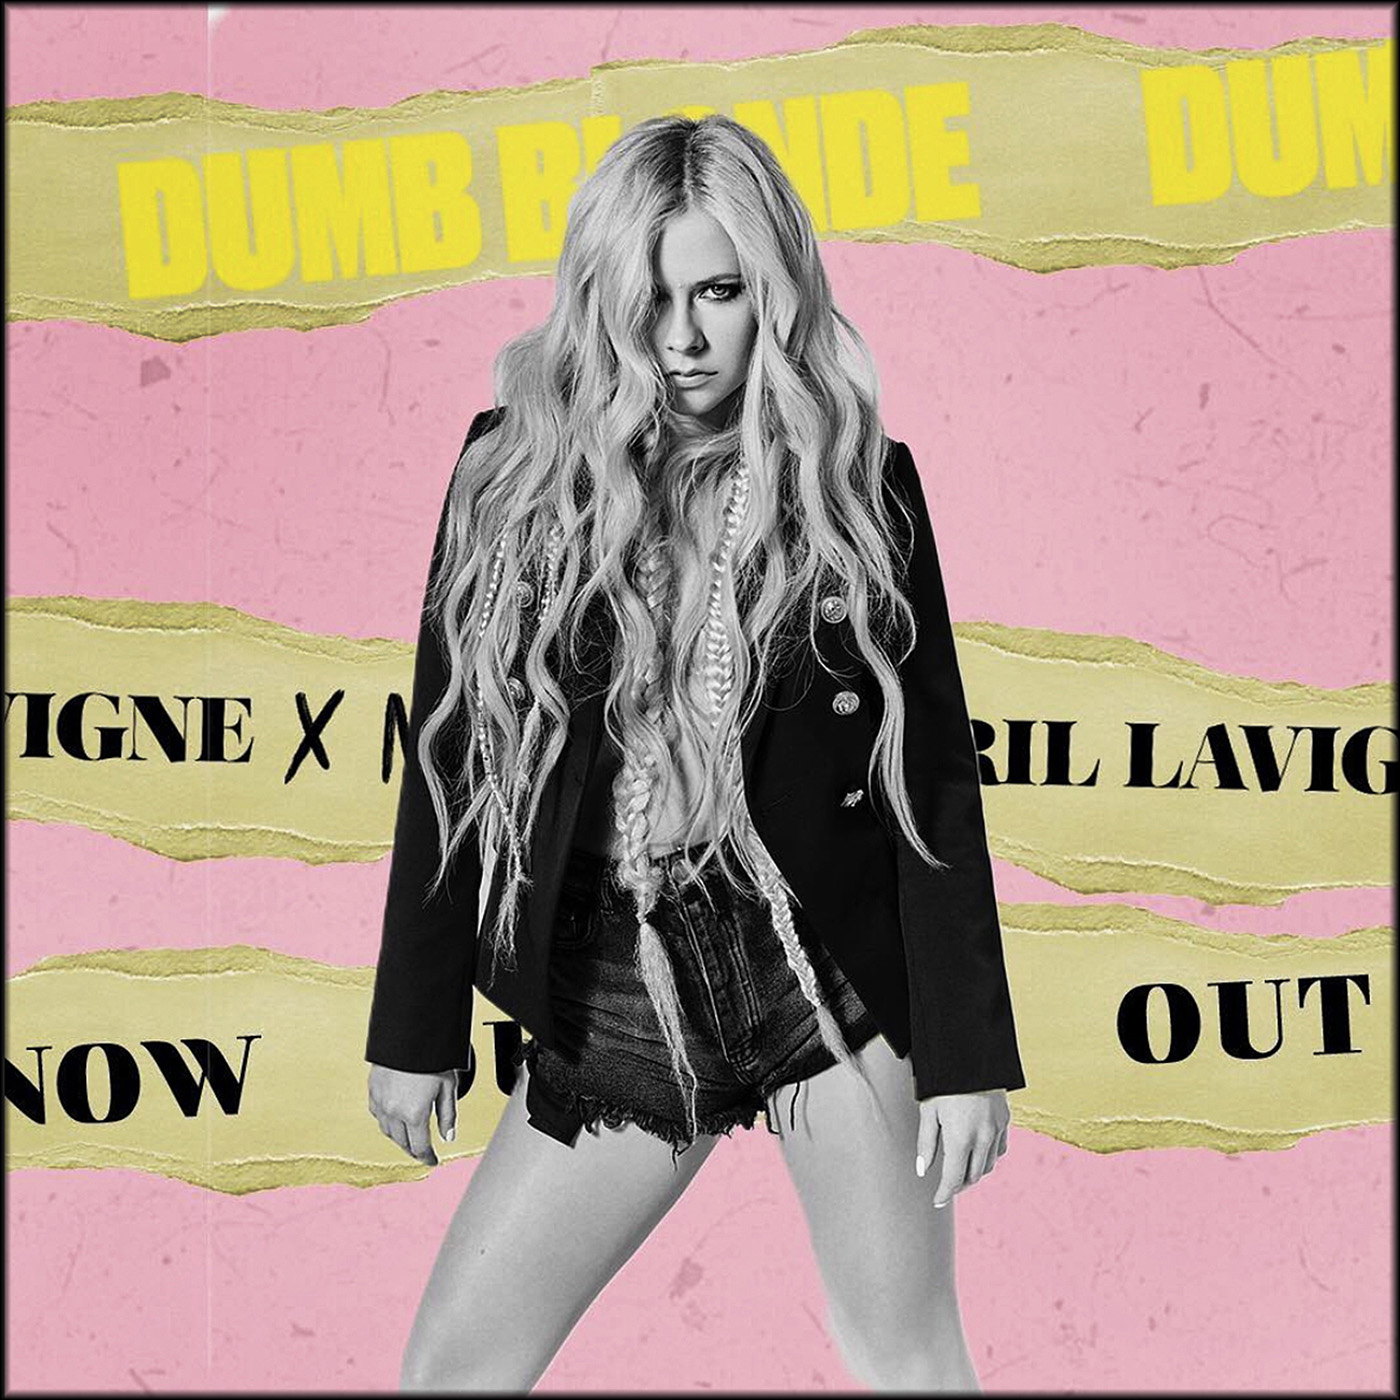 AVRIL LAVIGNE | DUMB BLONDE